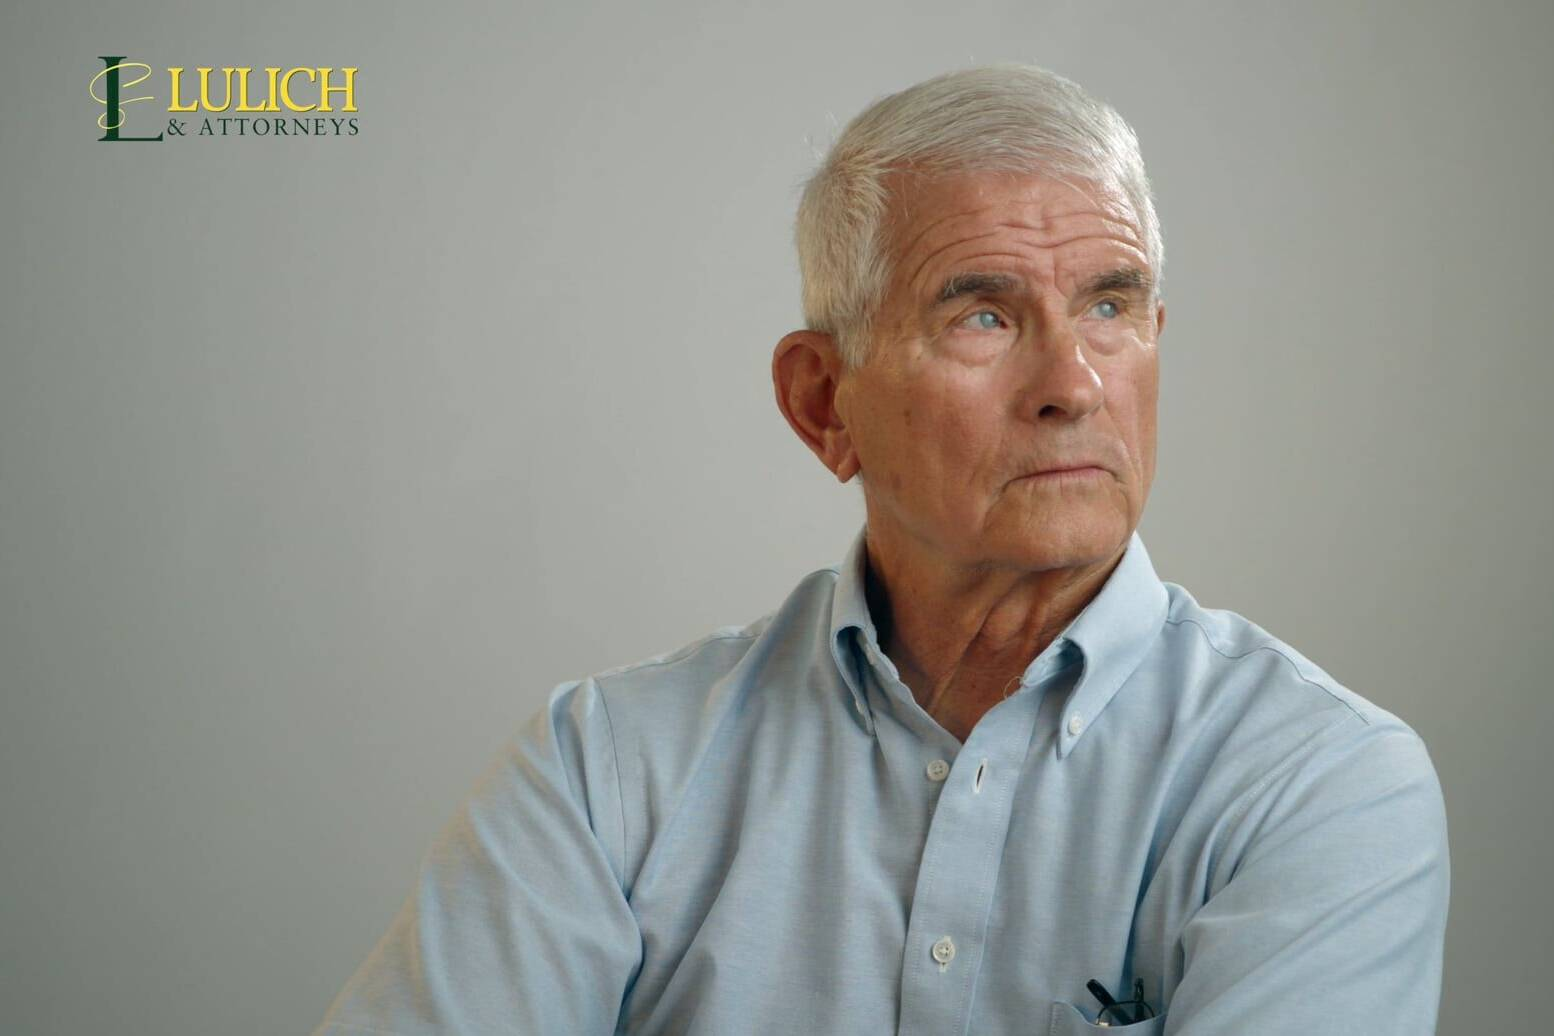 Ironside's professional video services created a person injury testimonial video for Lulich and Attorneys.